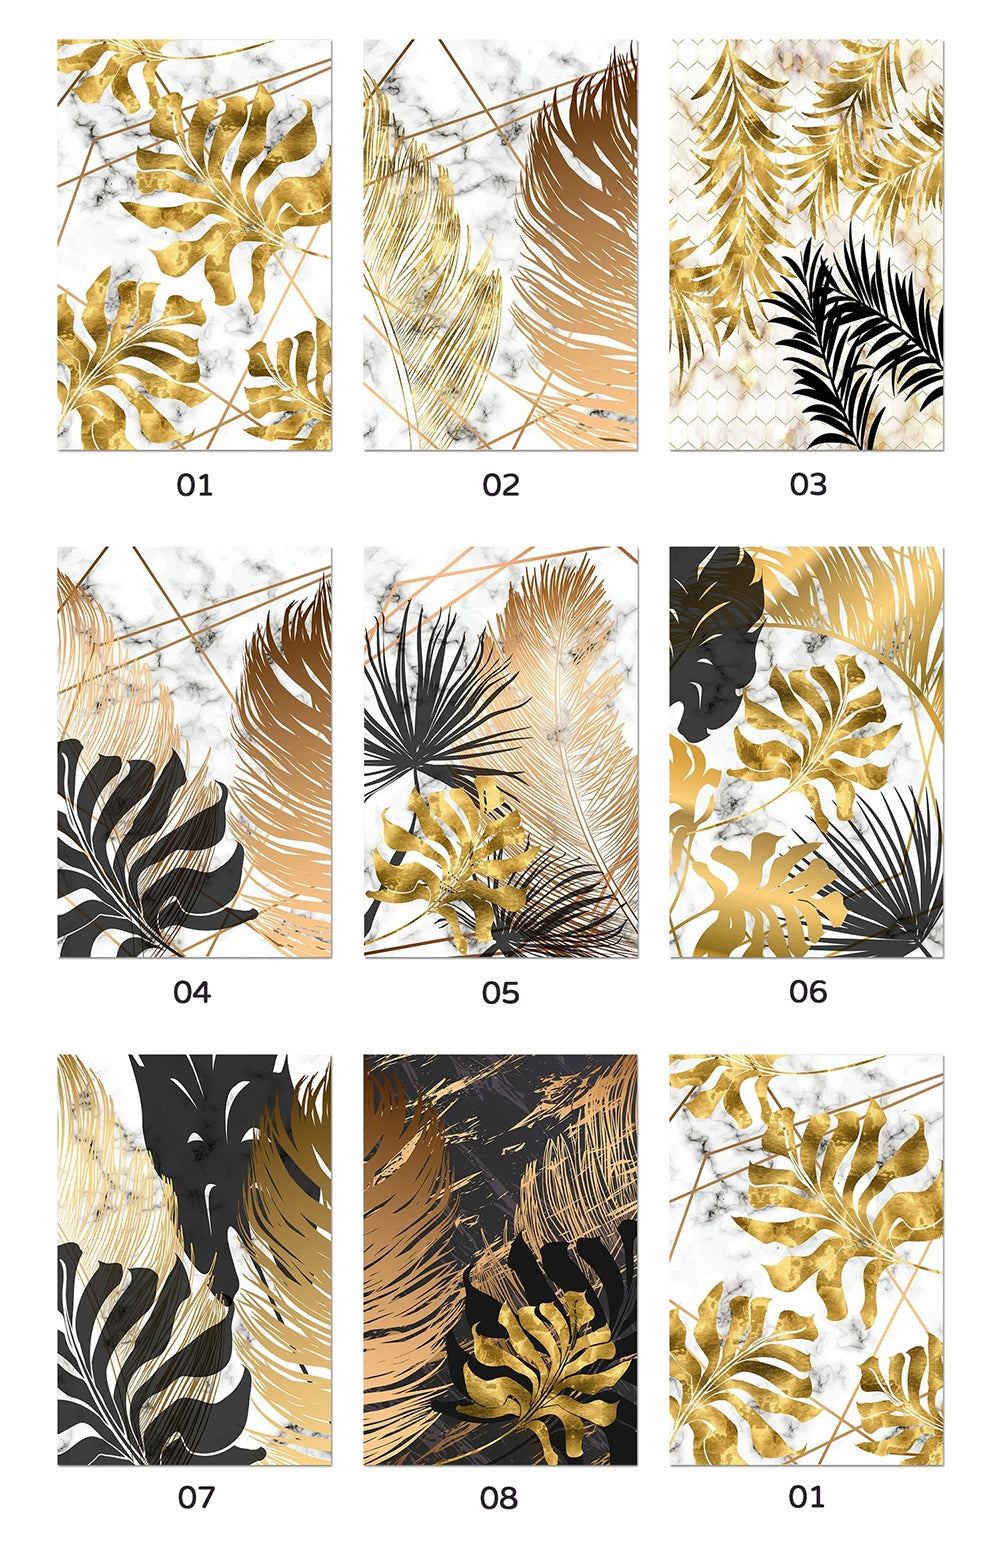 Golden Leaves On Marble Background Fine Art Canvas Prints Tropical Botanical Nordic Style Modern Luxury Lifestyle Wall Art For Living Room Dining Room Home Decor